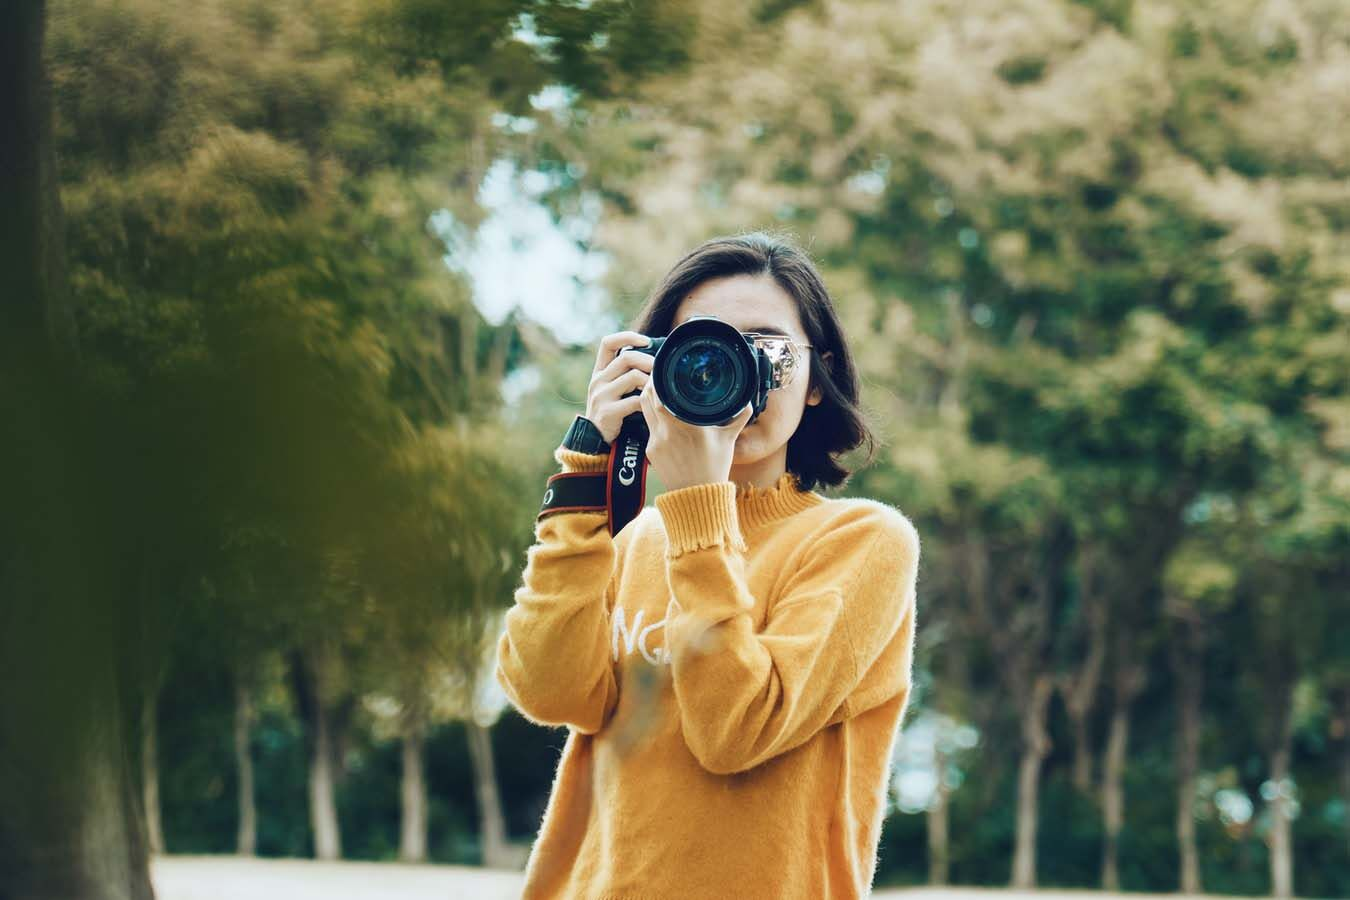 Top 6 Tips to Improve Your Photography Skills Right Now